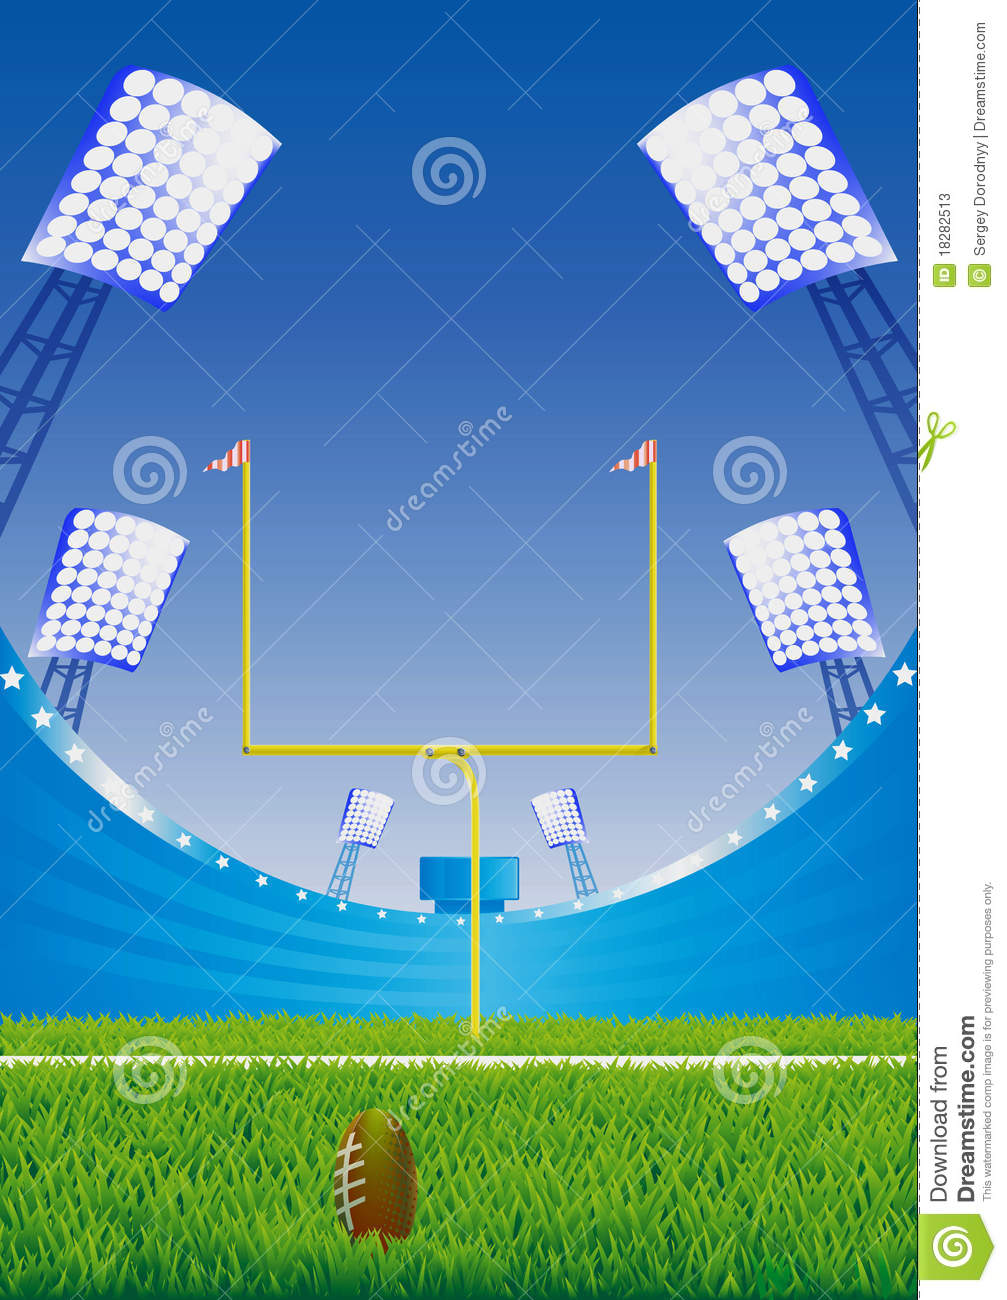 american football stadium stock illustration illustration of arena 18282513 dreamstime com